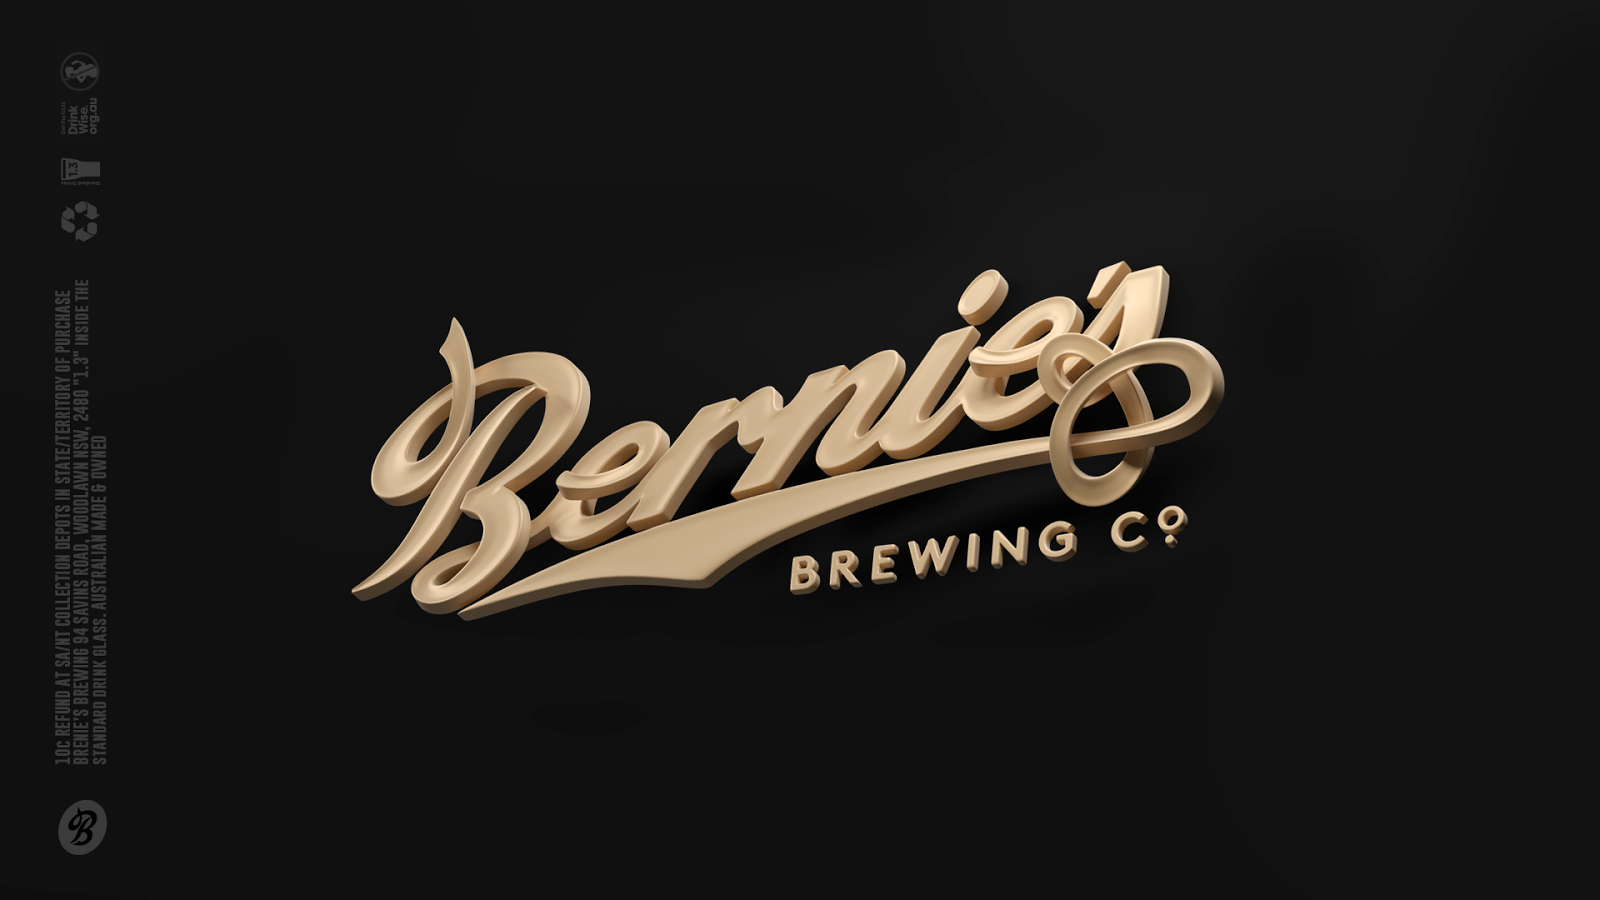 Bernie's brewing Co